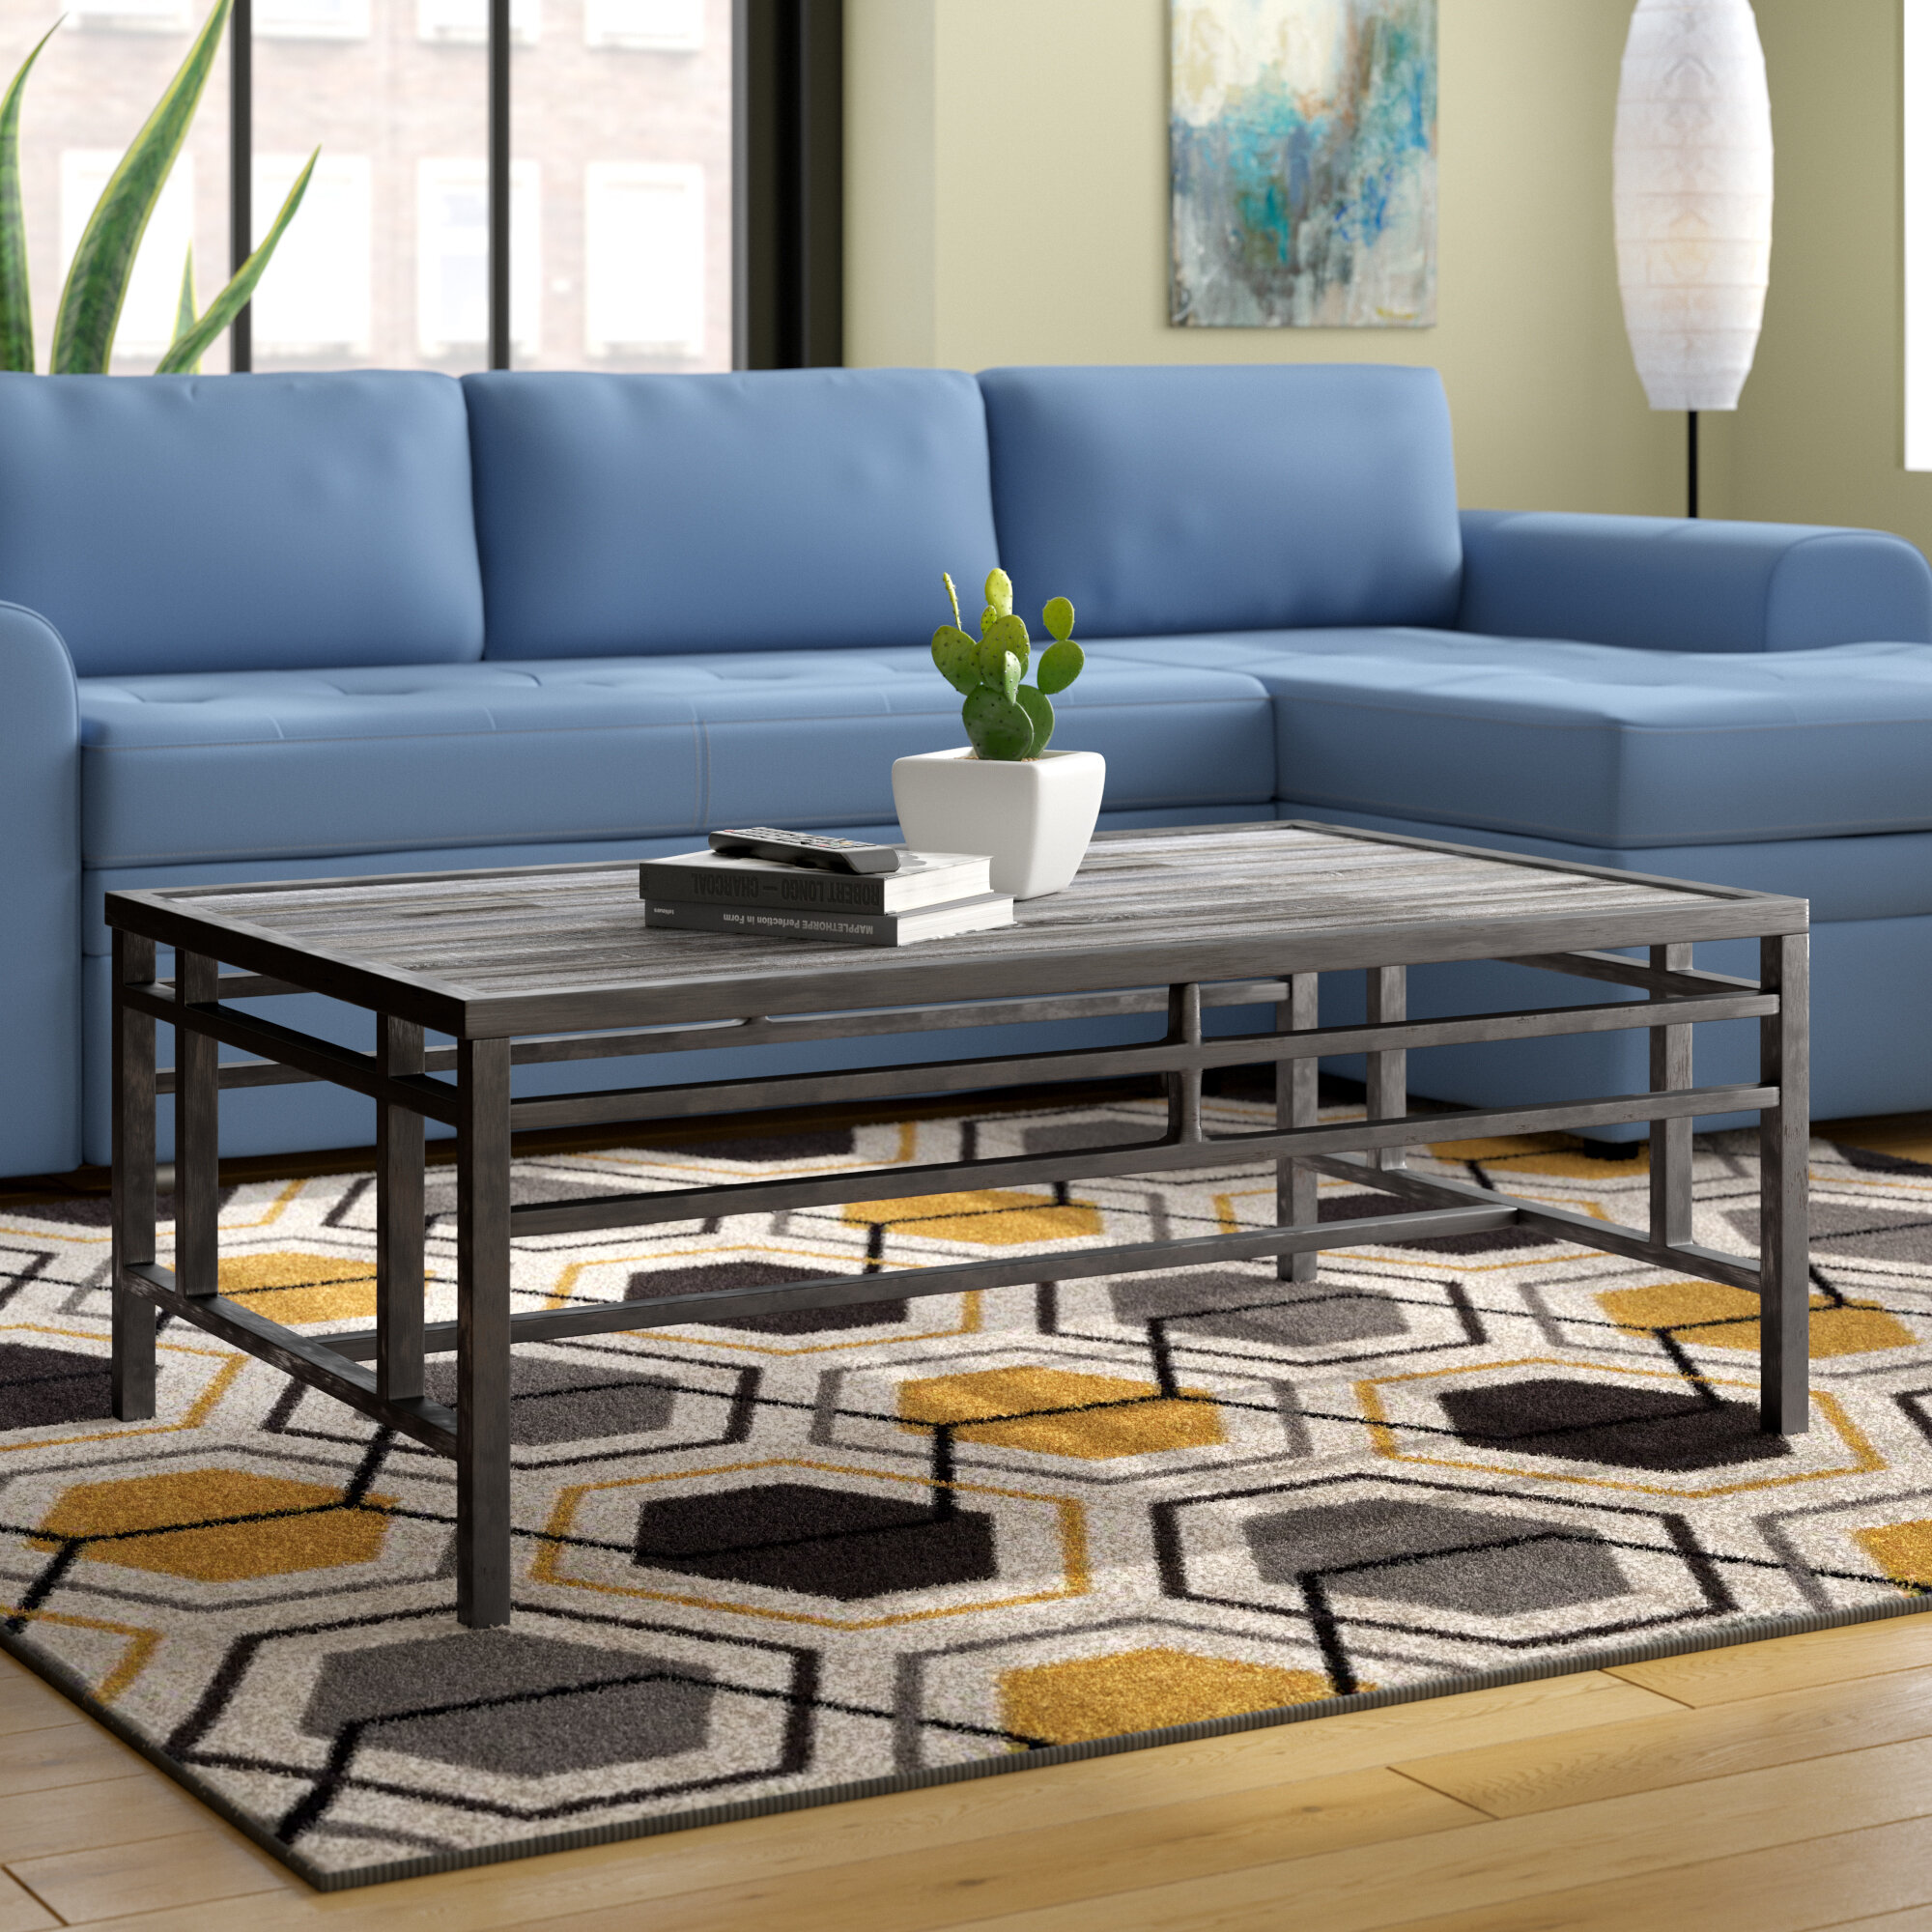 Ivy Bronx Erie Coffee Table & Reviews | Wayfair